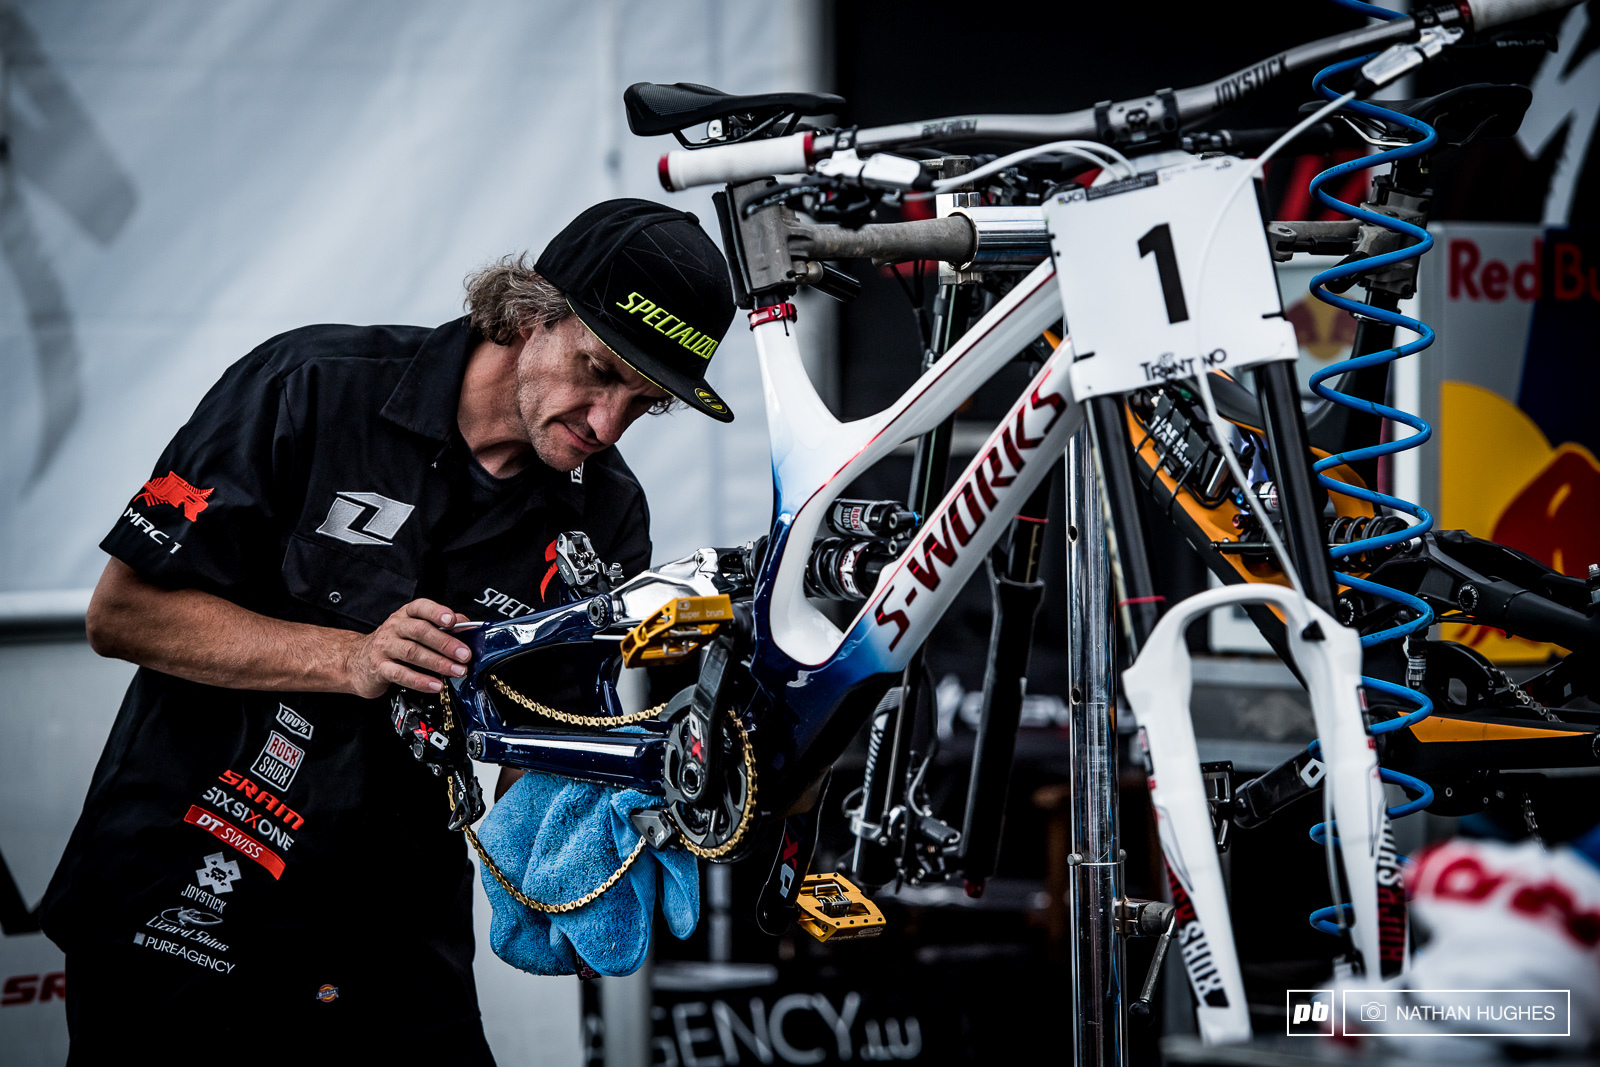 No rainbow towel to buff Loic s bike Definitely an oversight at the Specialized Gravity Republic Worlds gear planning session...